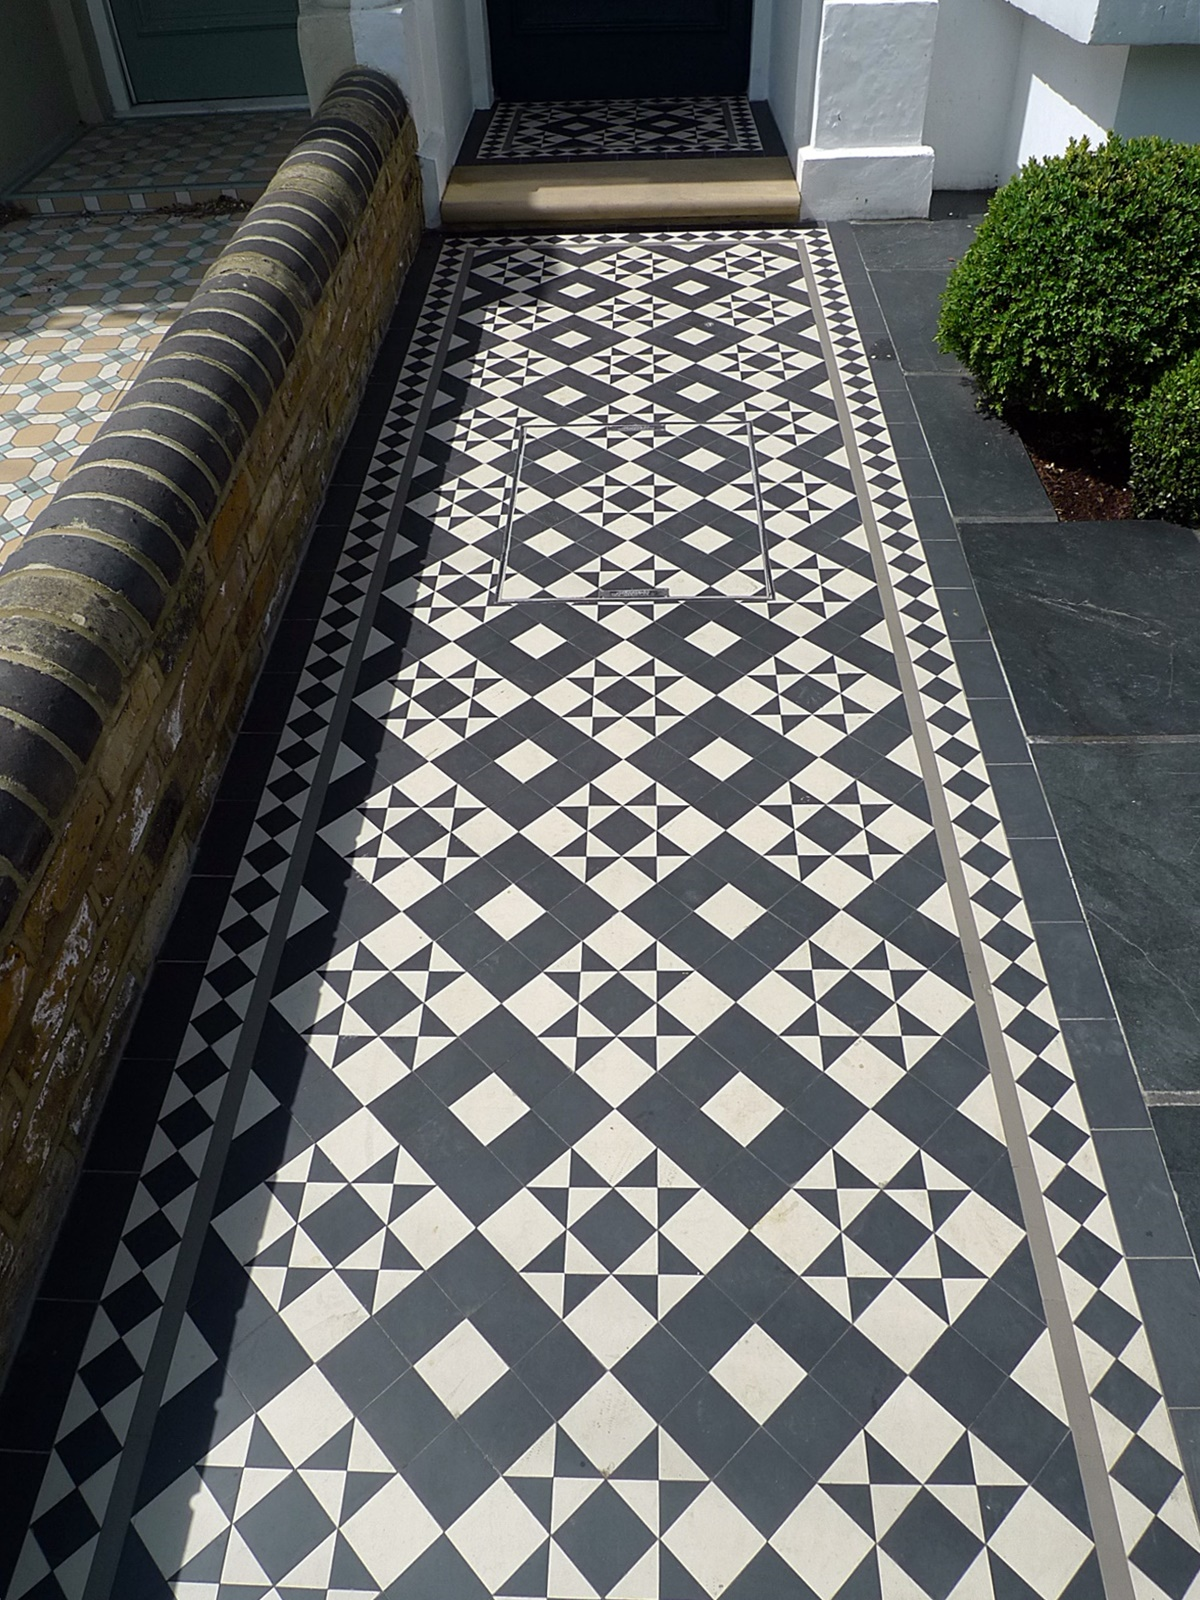 Victorian black and white mosaic London